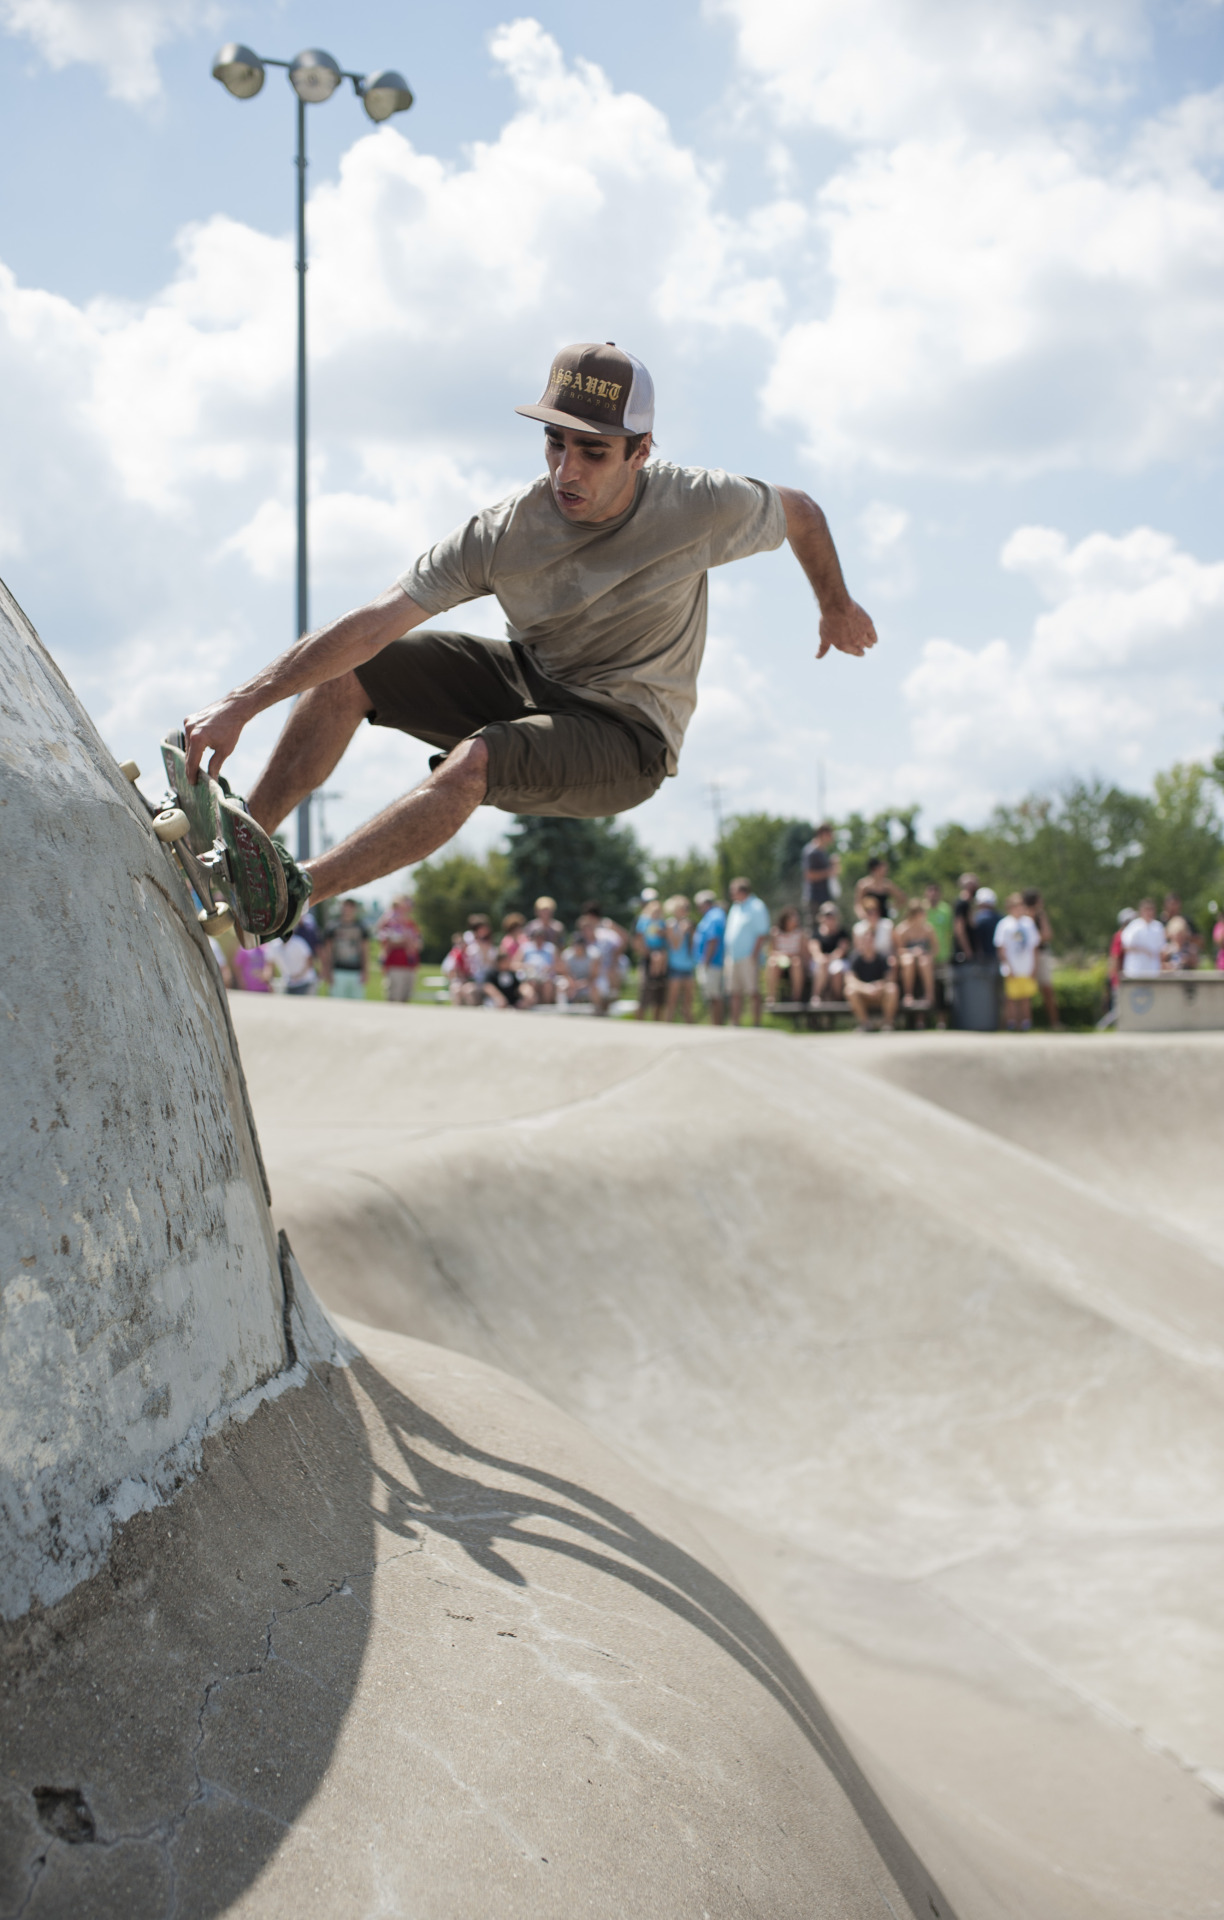 Wildman (Mike Nypaver) ripping at the Birdhouse demo in the Athens County Skatepark. Athens, Ohio.